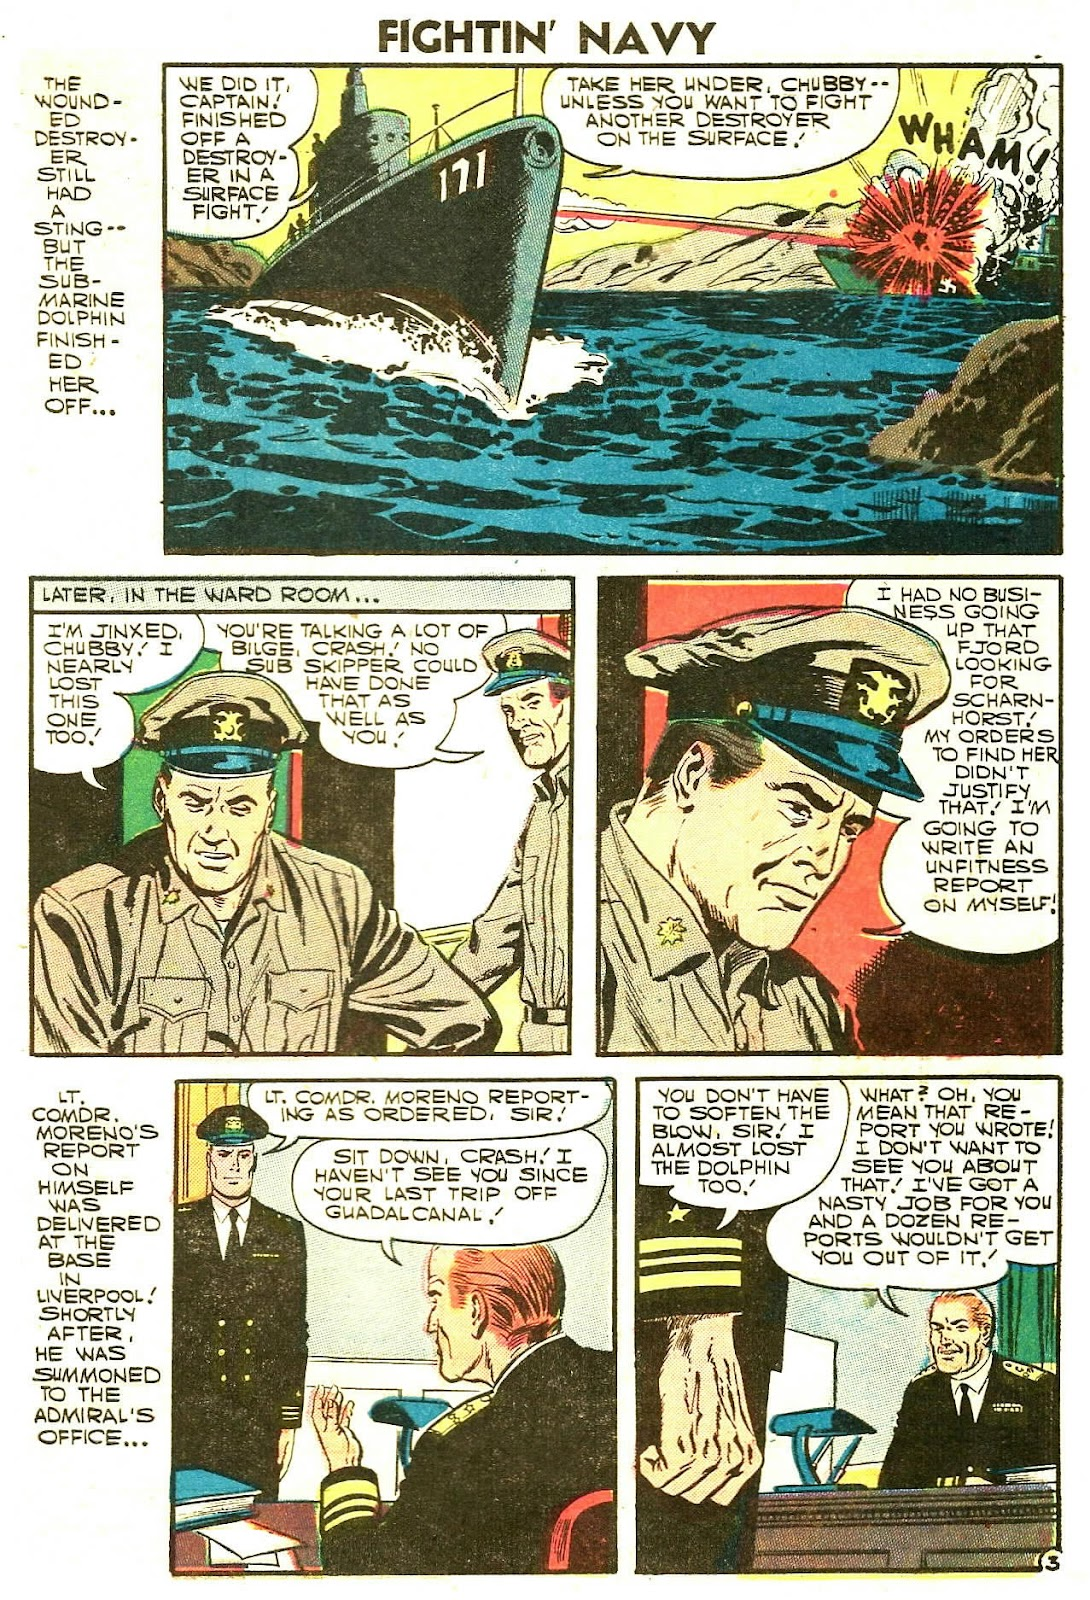 Read online Fightin' Navy comic -  Issue #78 - 5